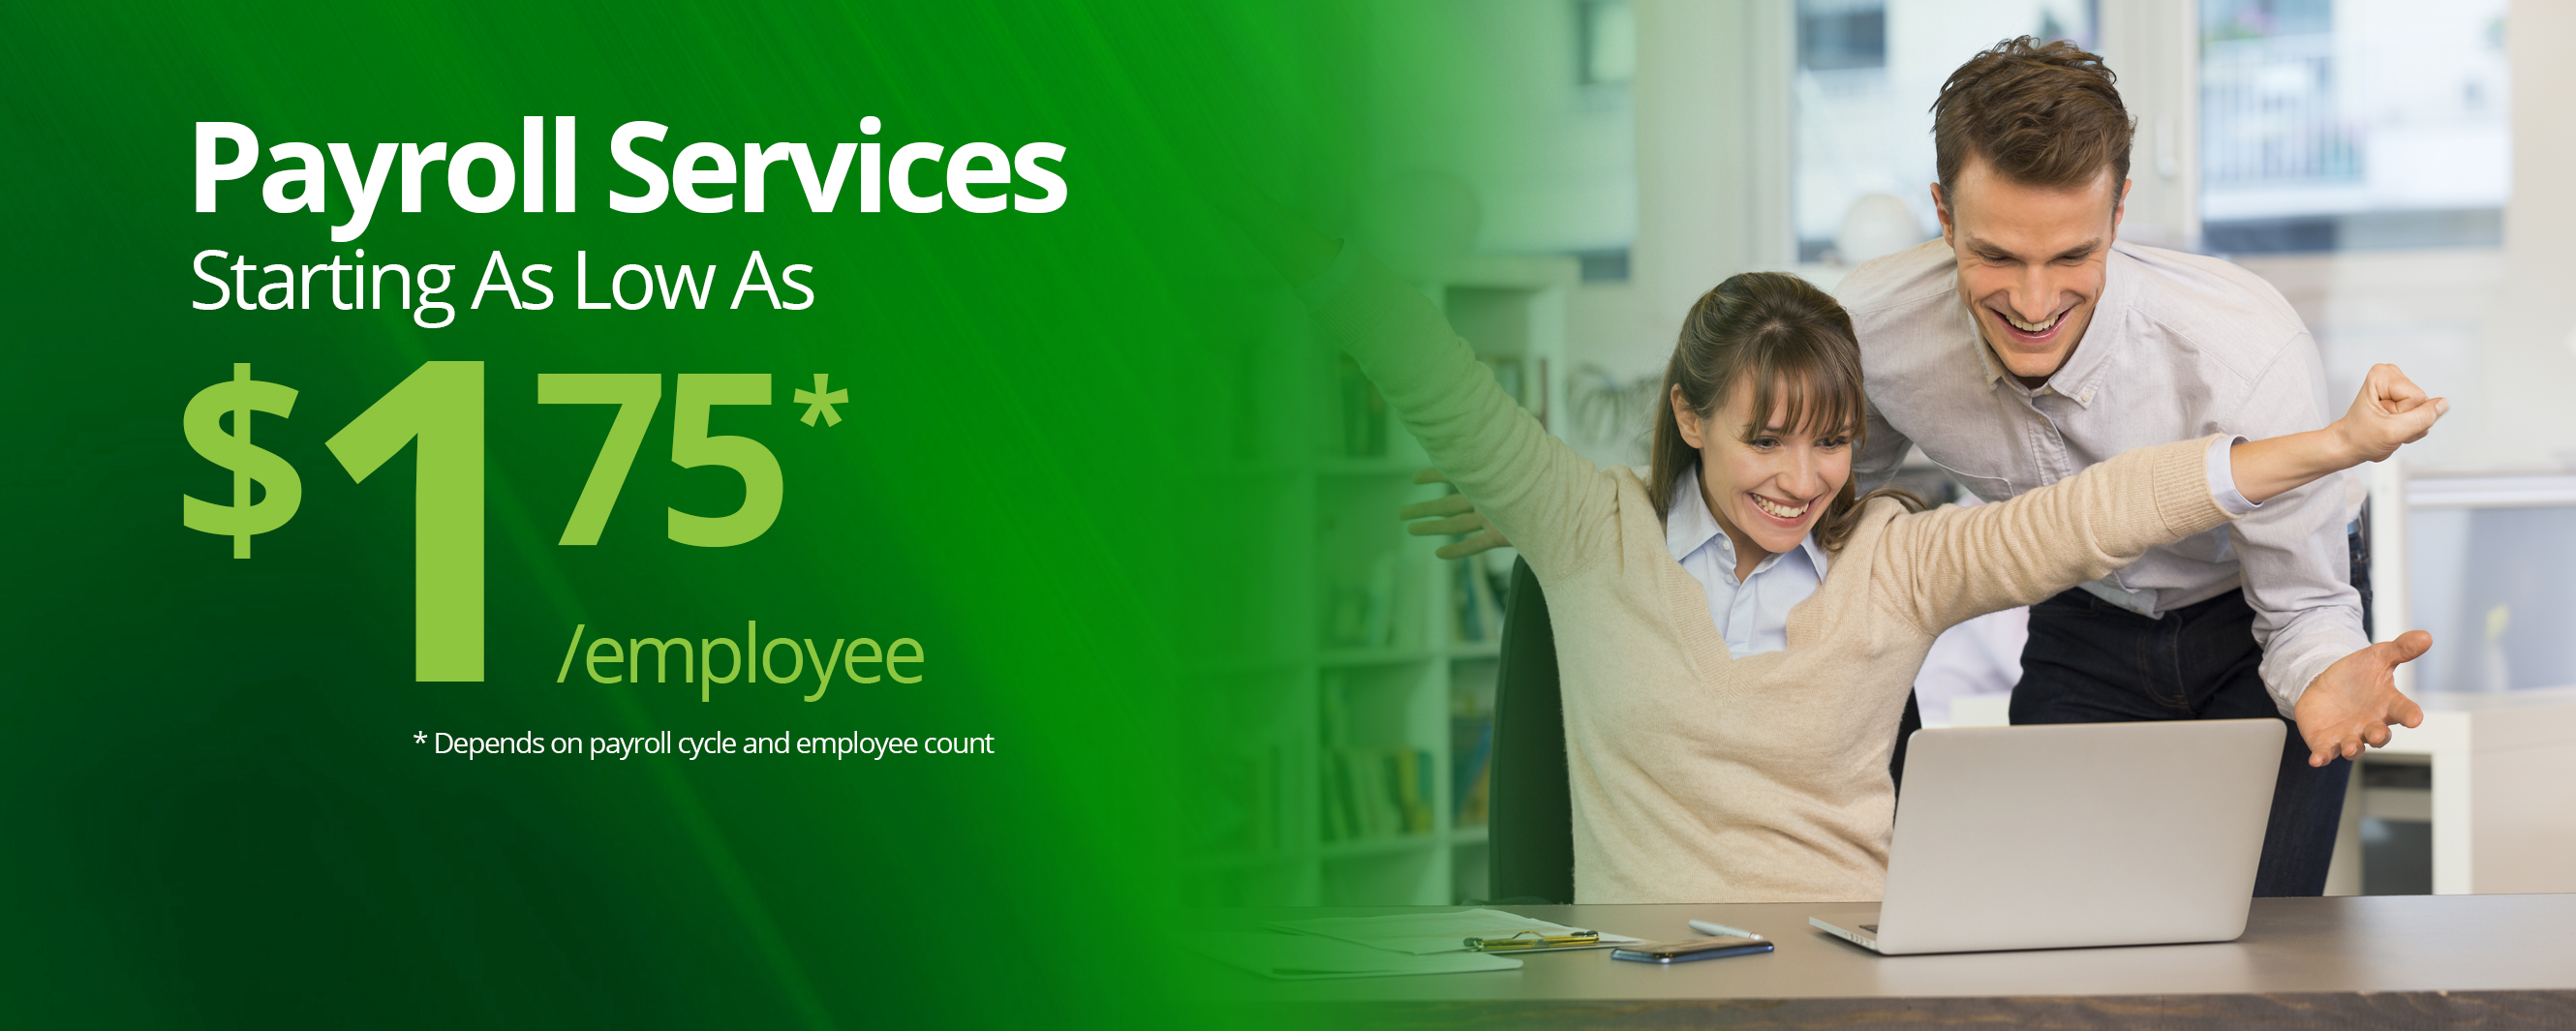 Payroll Services offered at low prices to help your business manage payroll with automated time and attendance